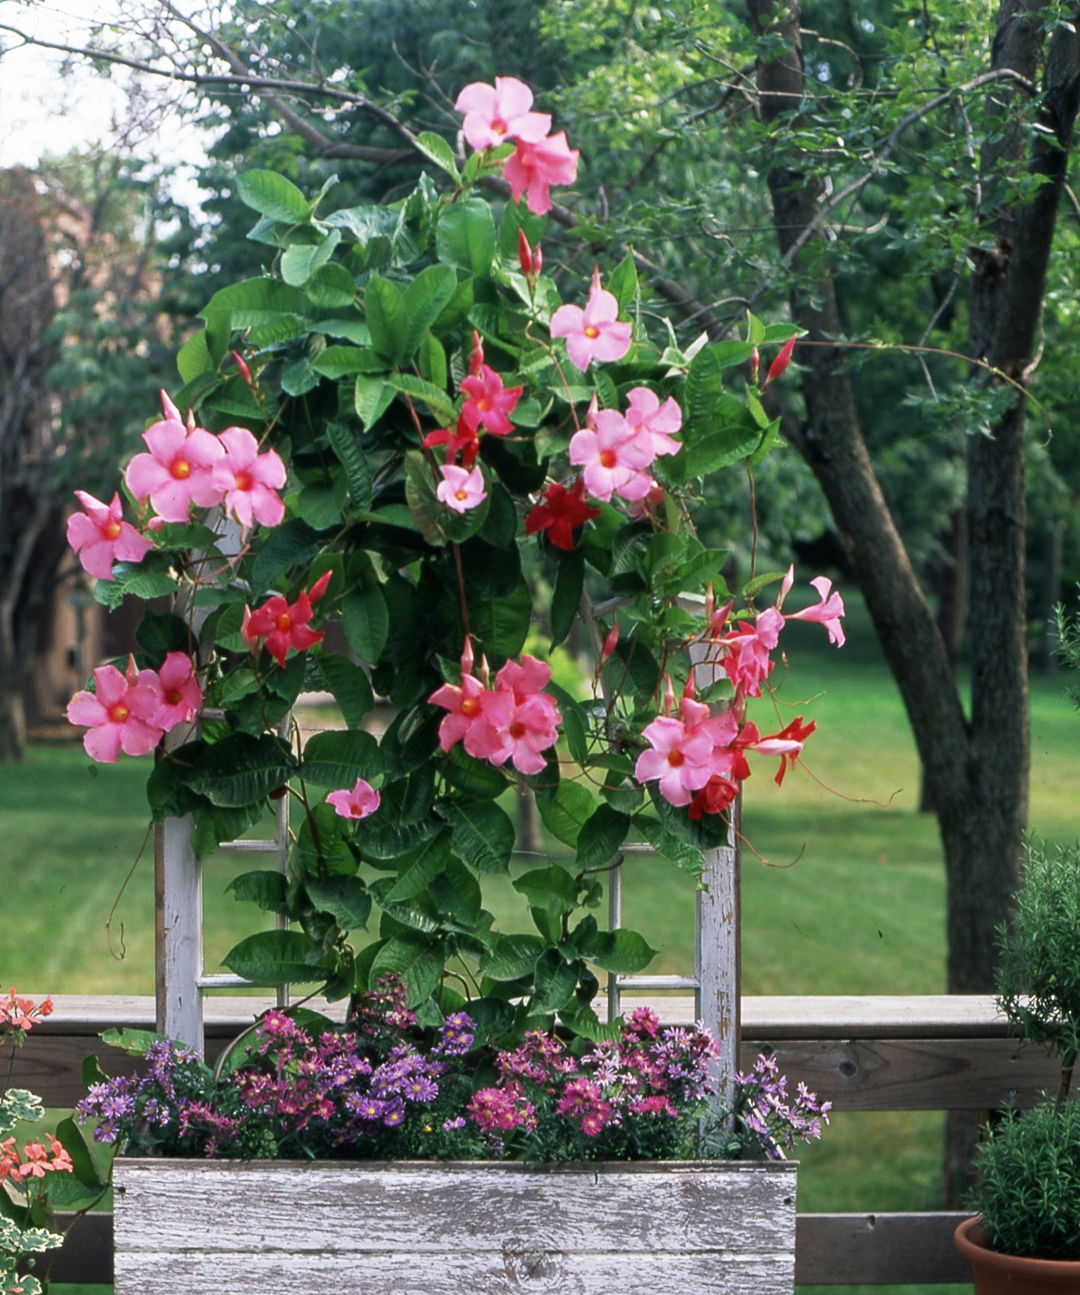 pink Mandevilla flowers in wooden container